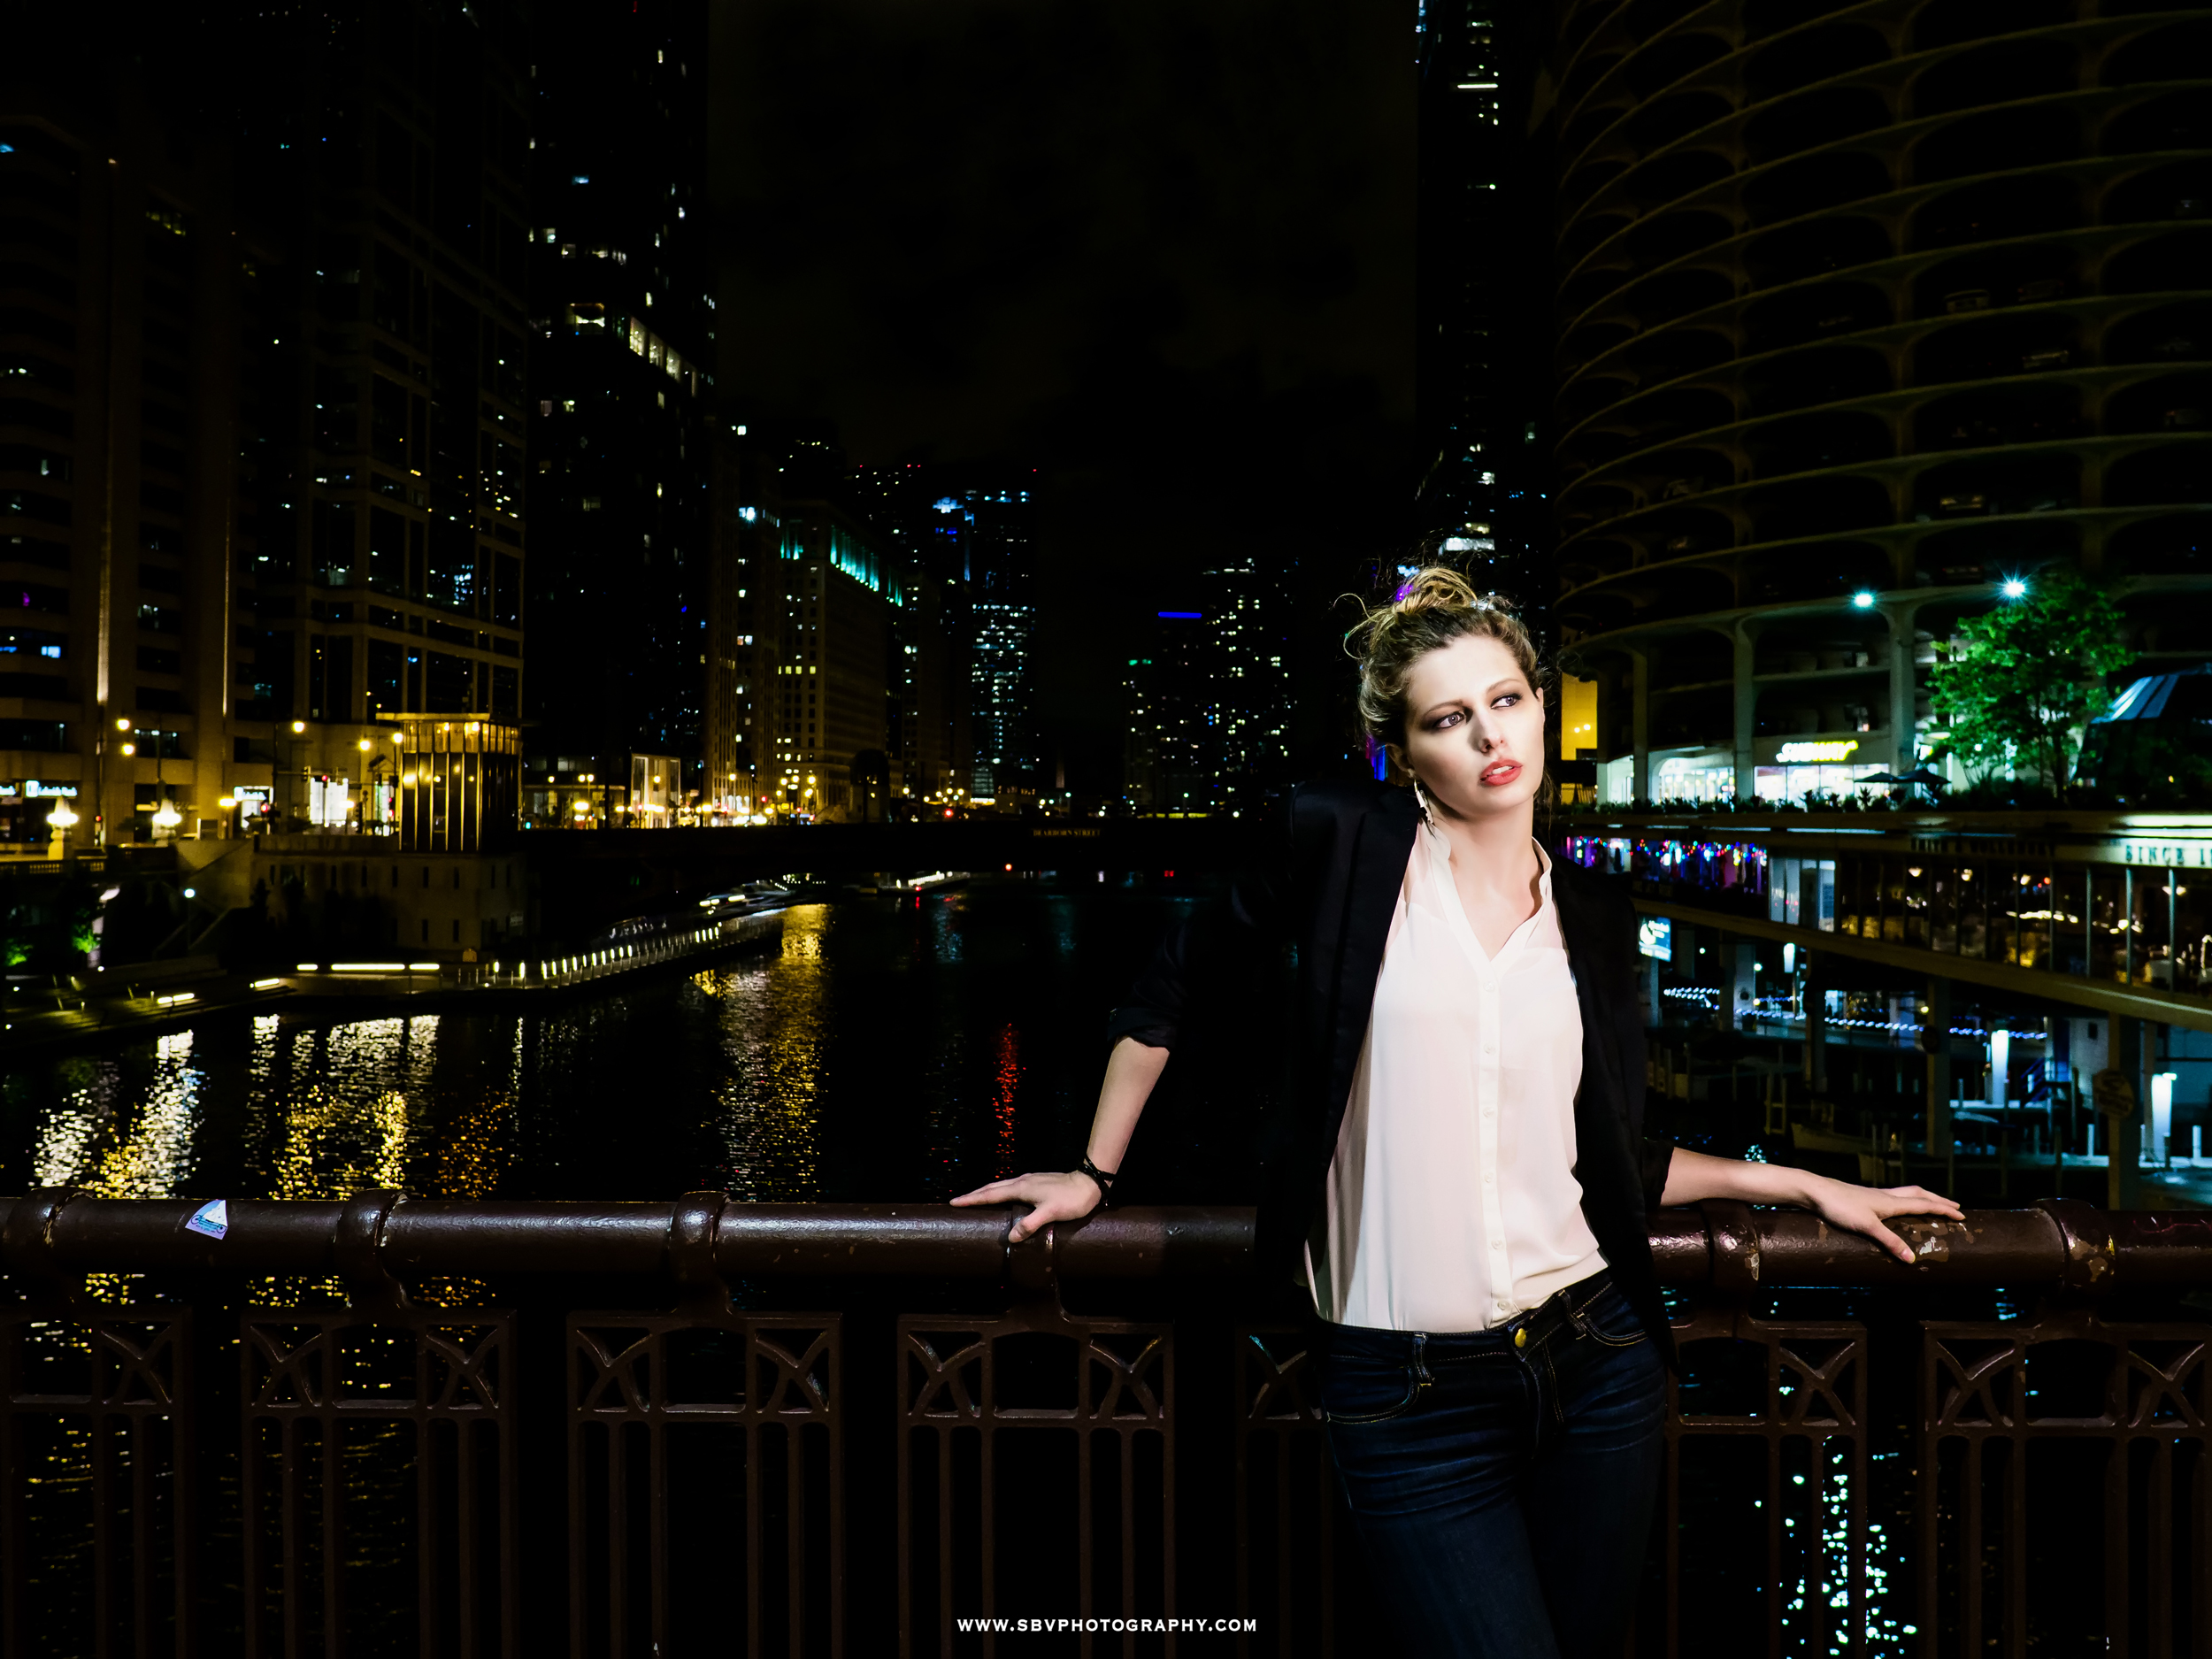 Night portrait overlooking the Chicago River.